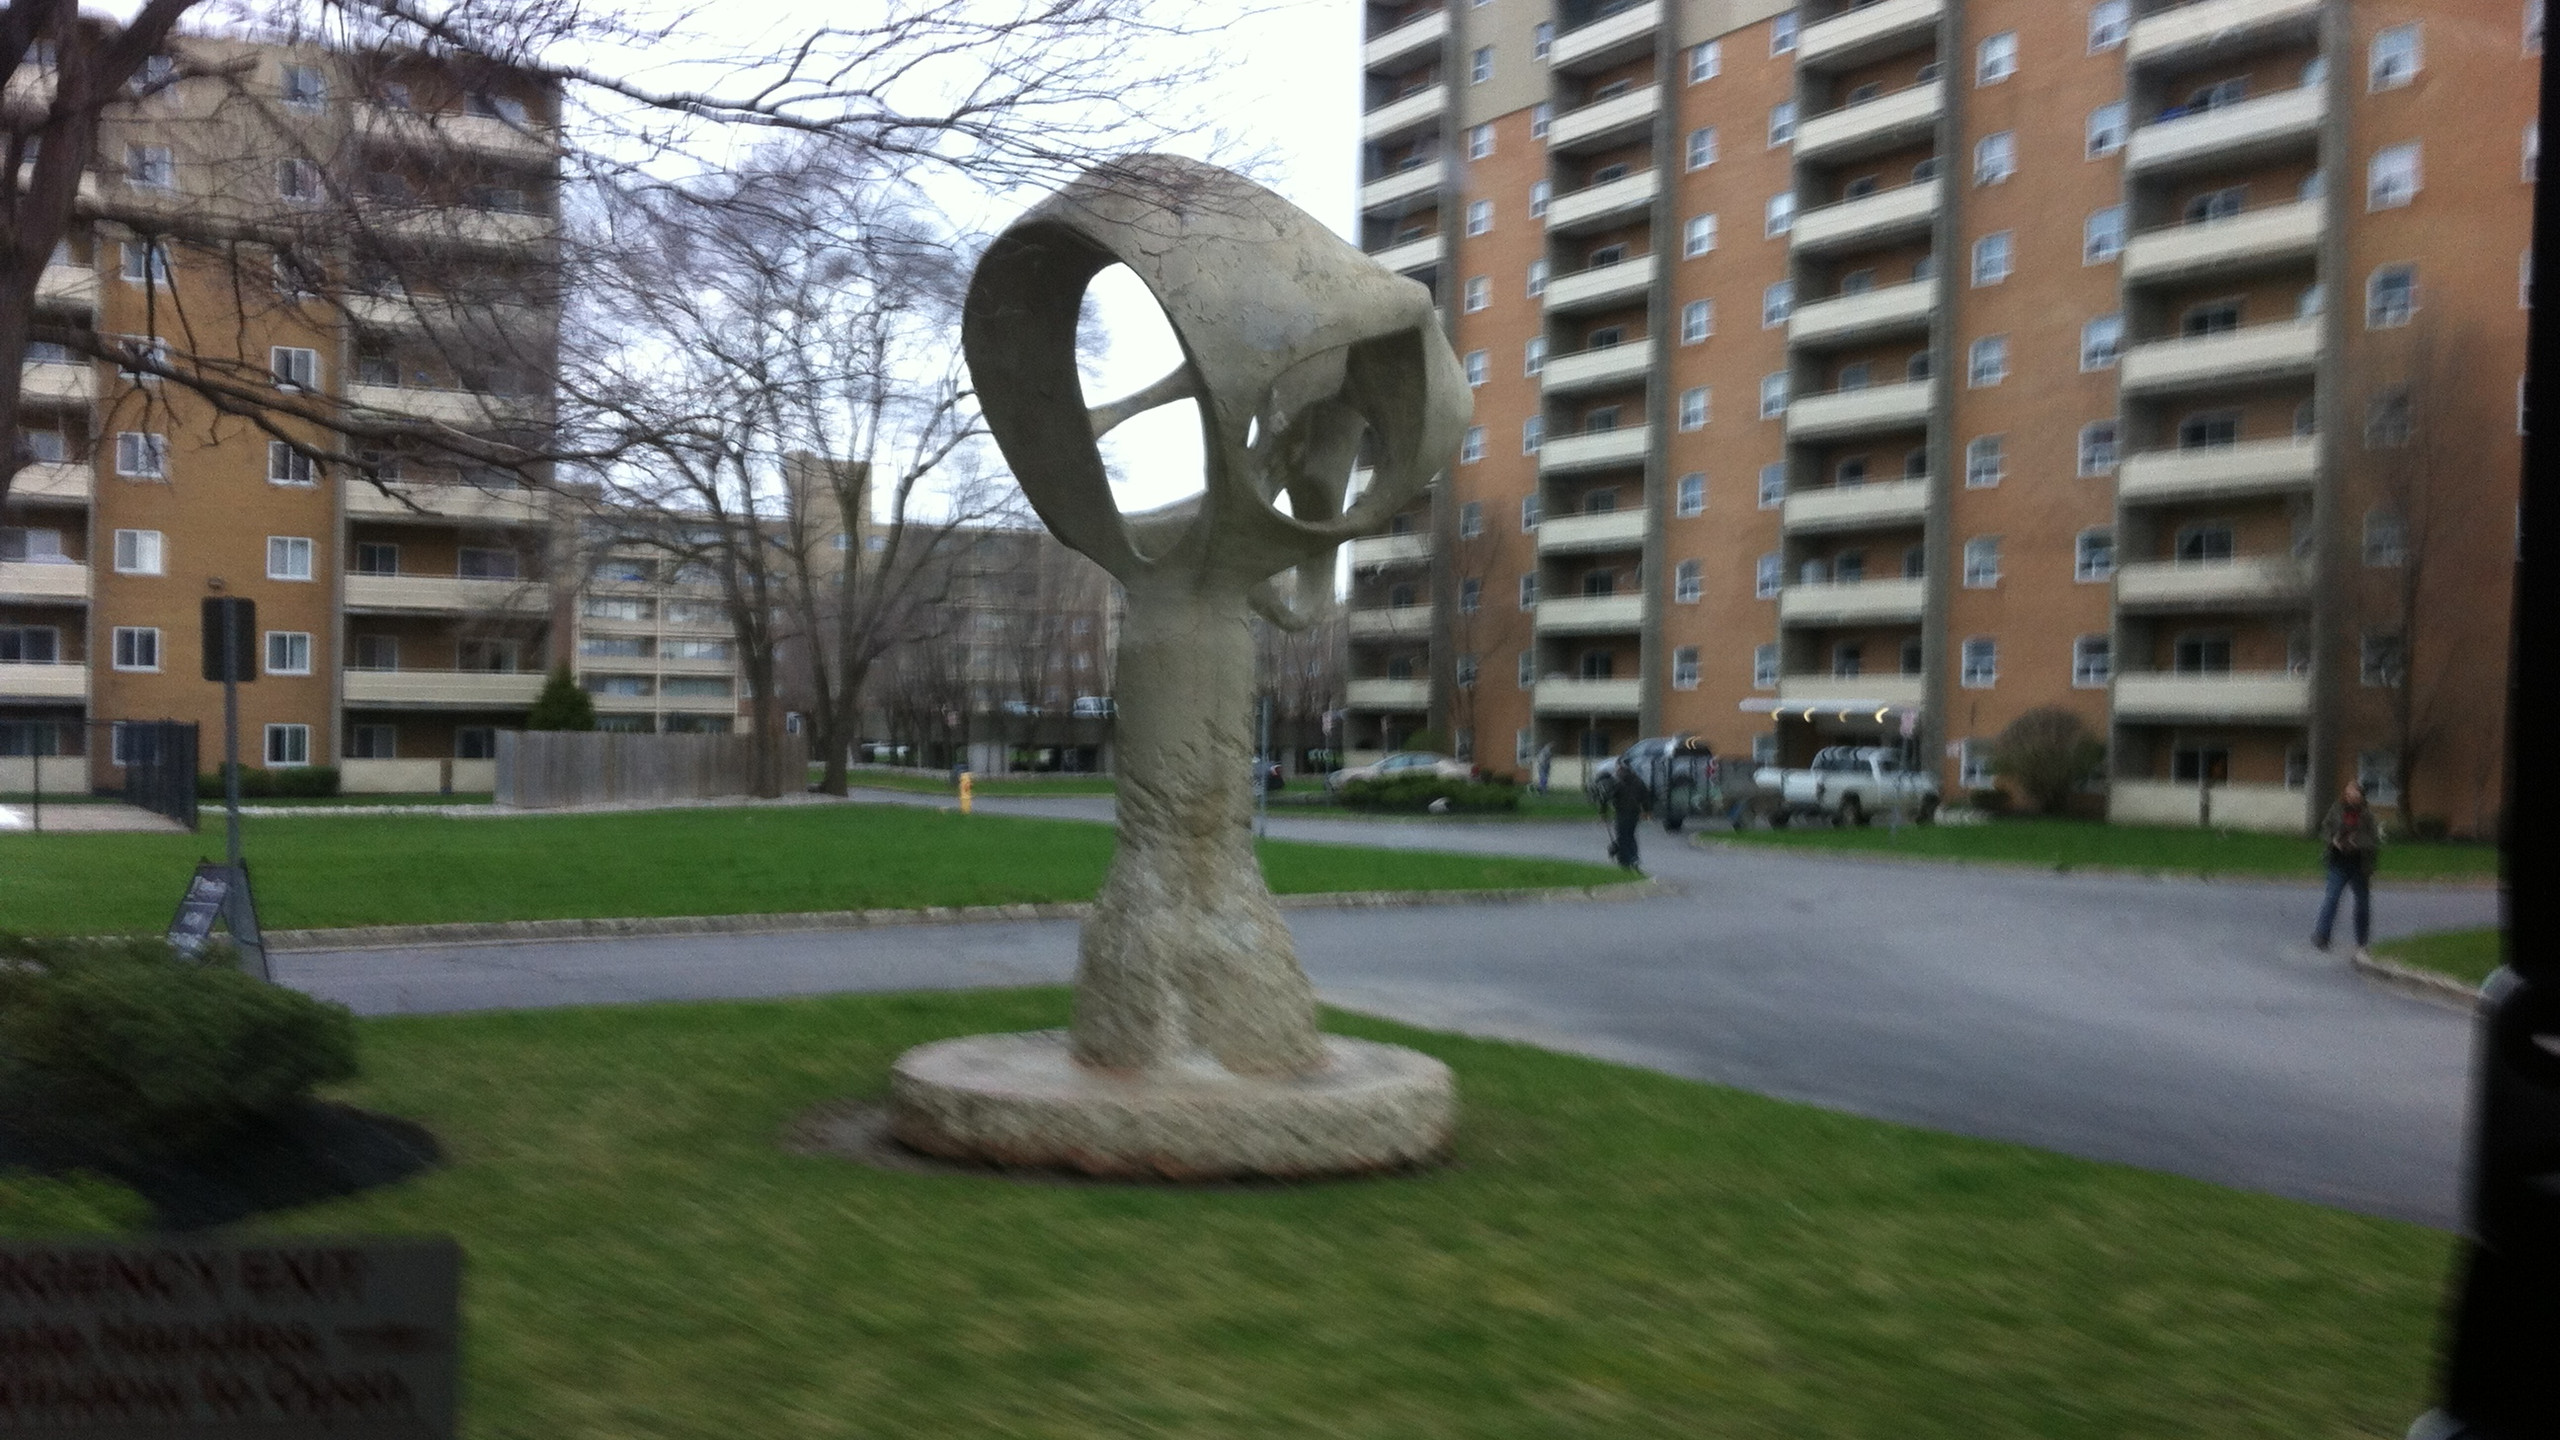 A strange sculpture I saw on my way to the show.